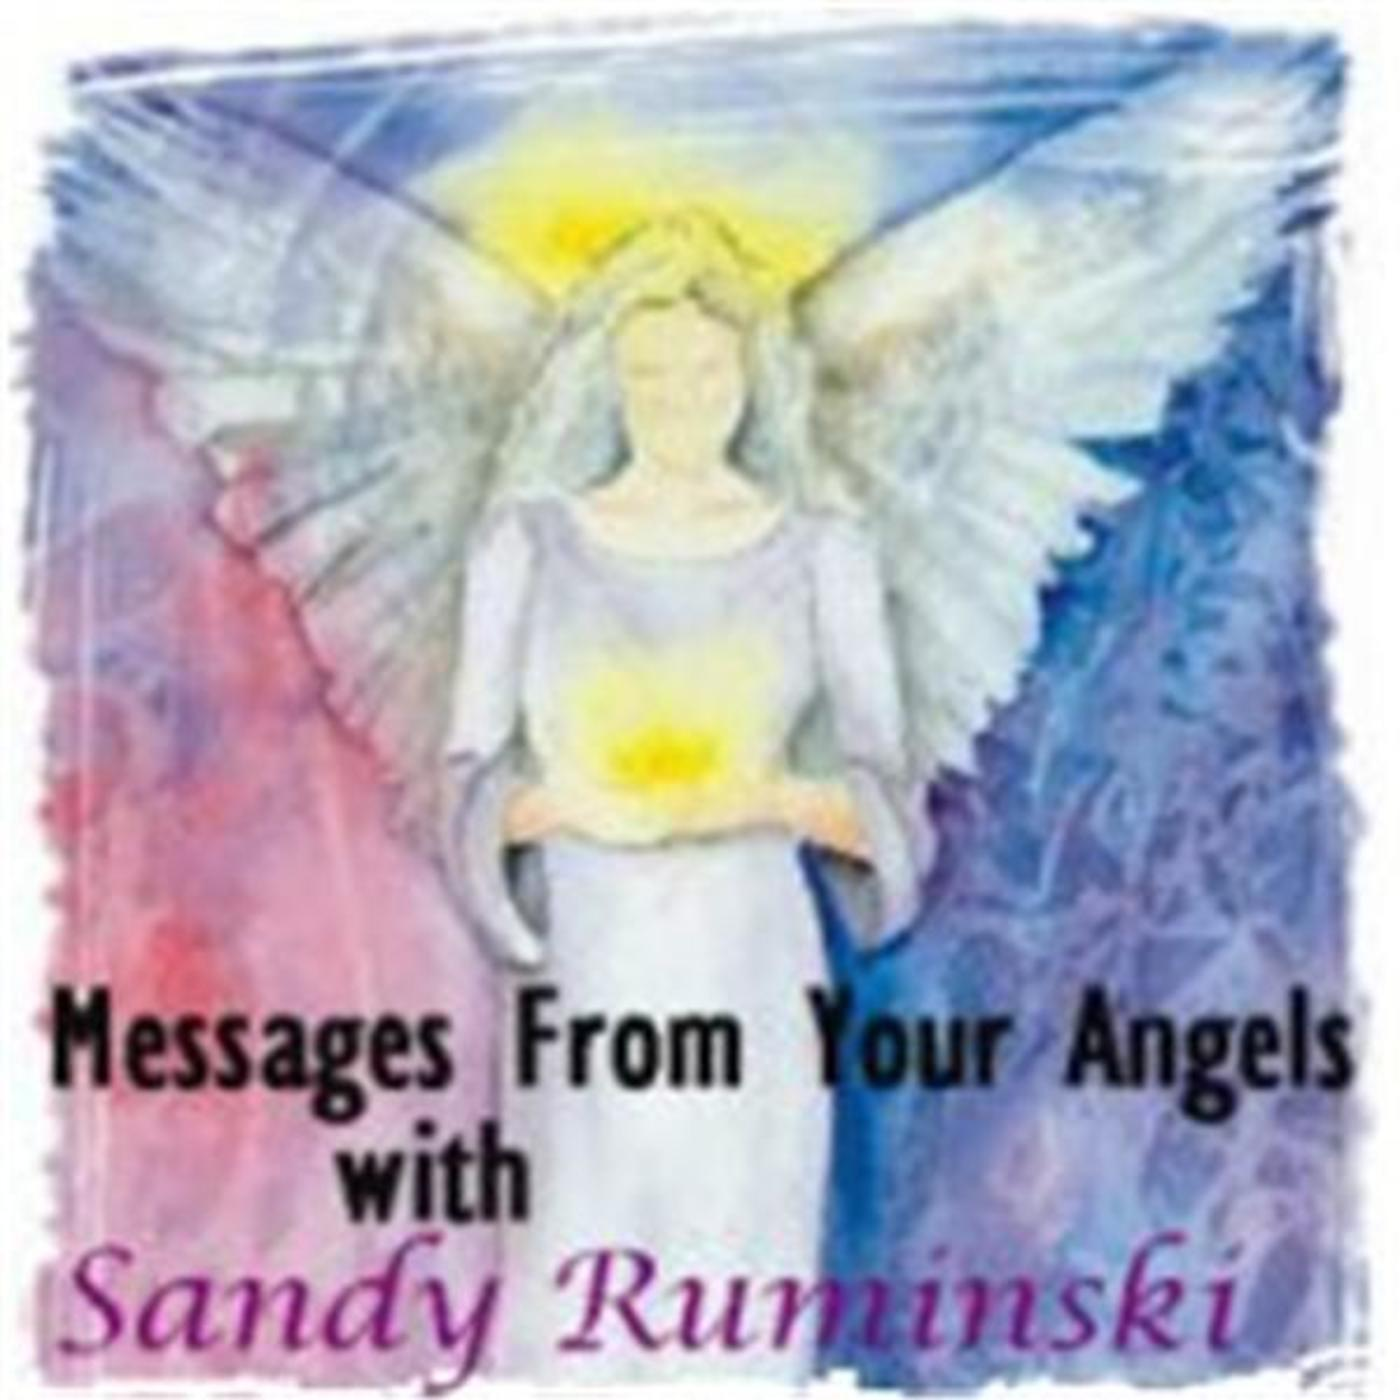 Messages From Your Angels Radio Show & The Evidential Medium Podcast